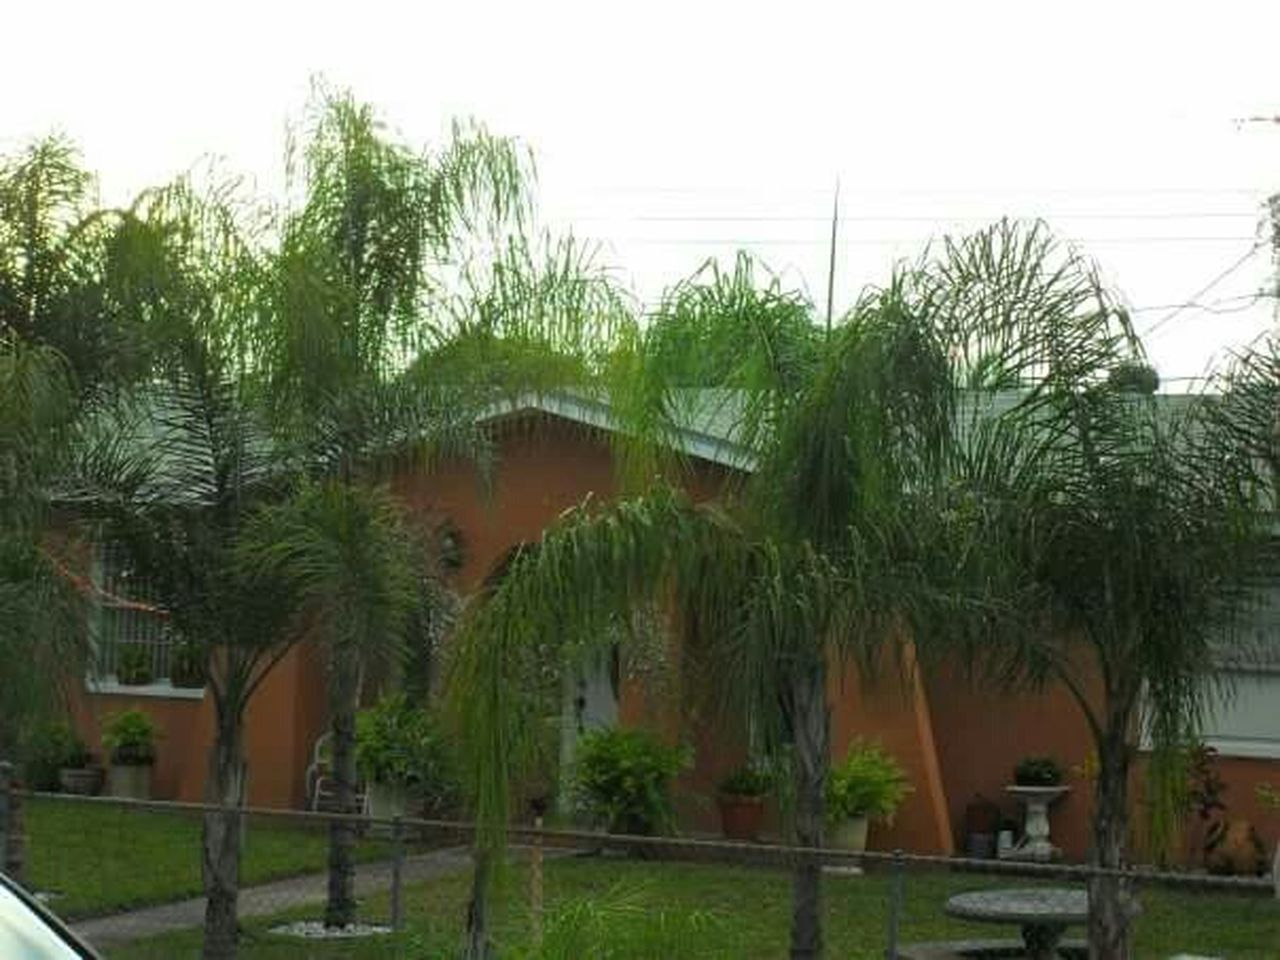 House Florida Palm Trees Orange Rustic Home Exterior House Entrance